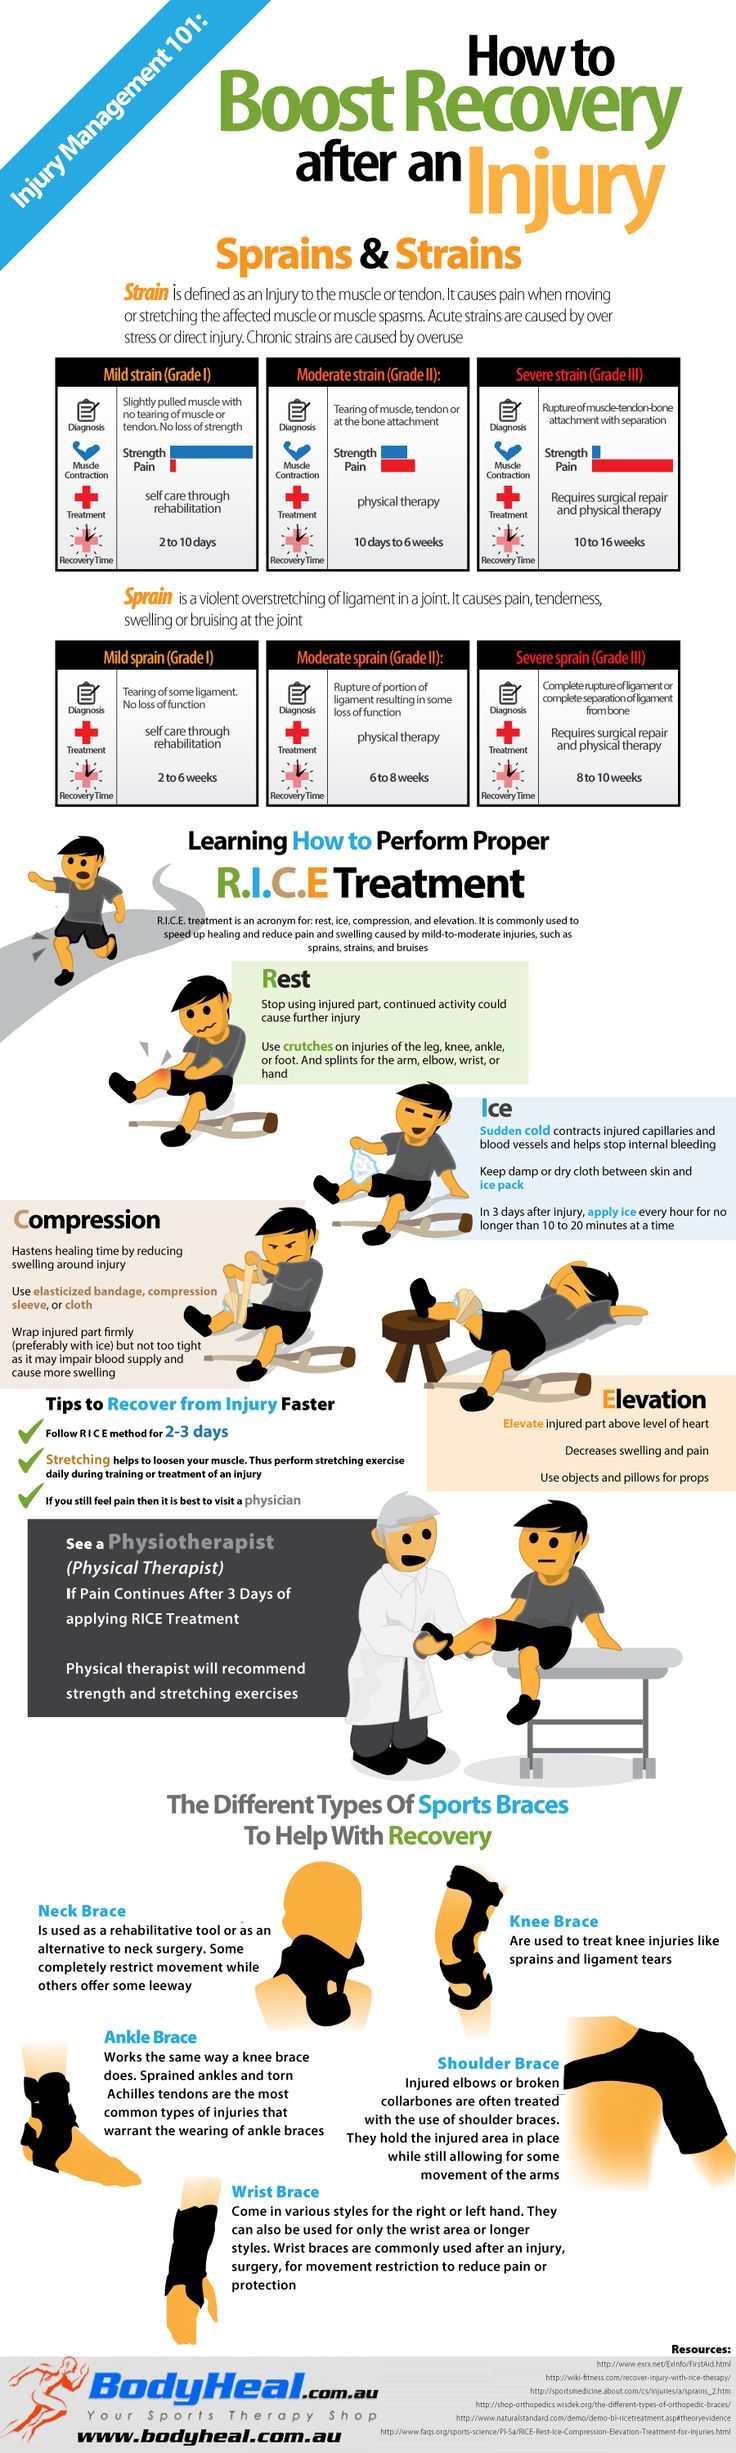 RICE Treatment. We all know it but do we actually do it?